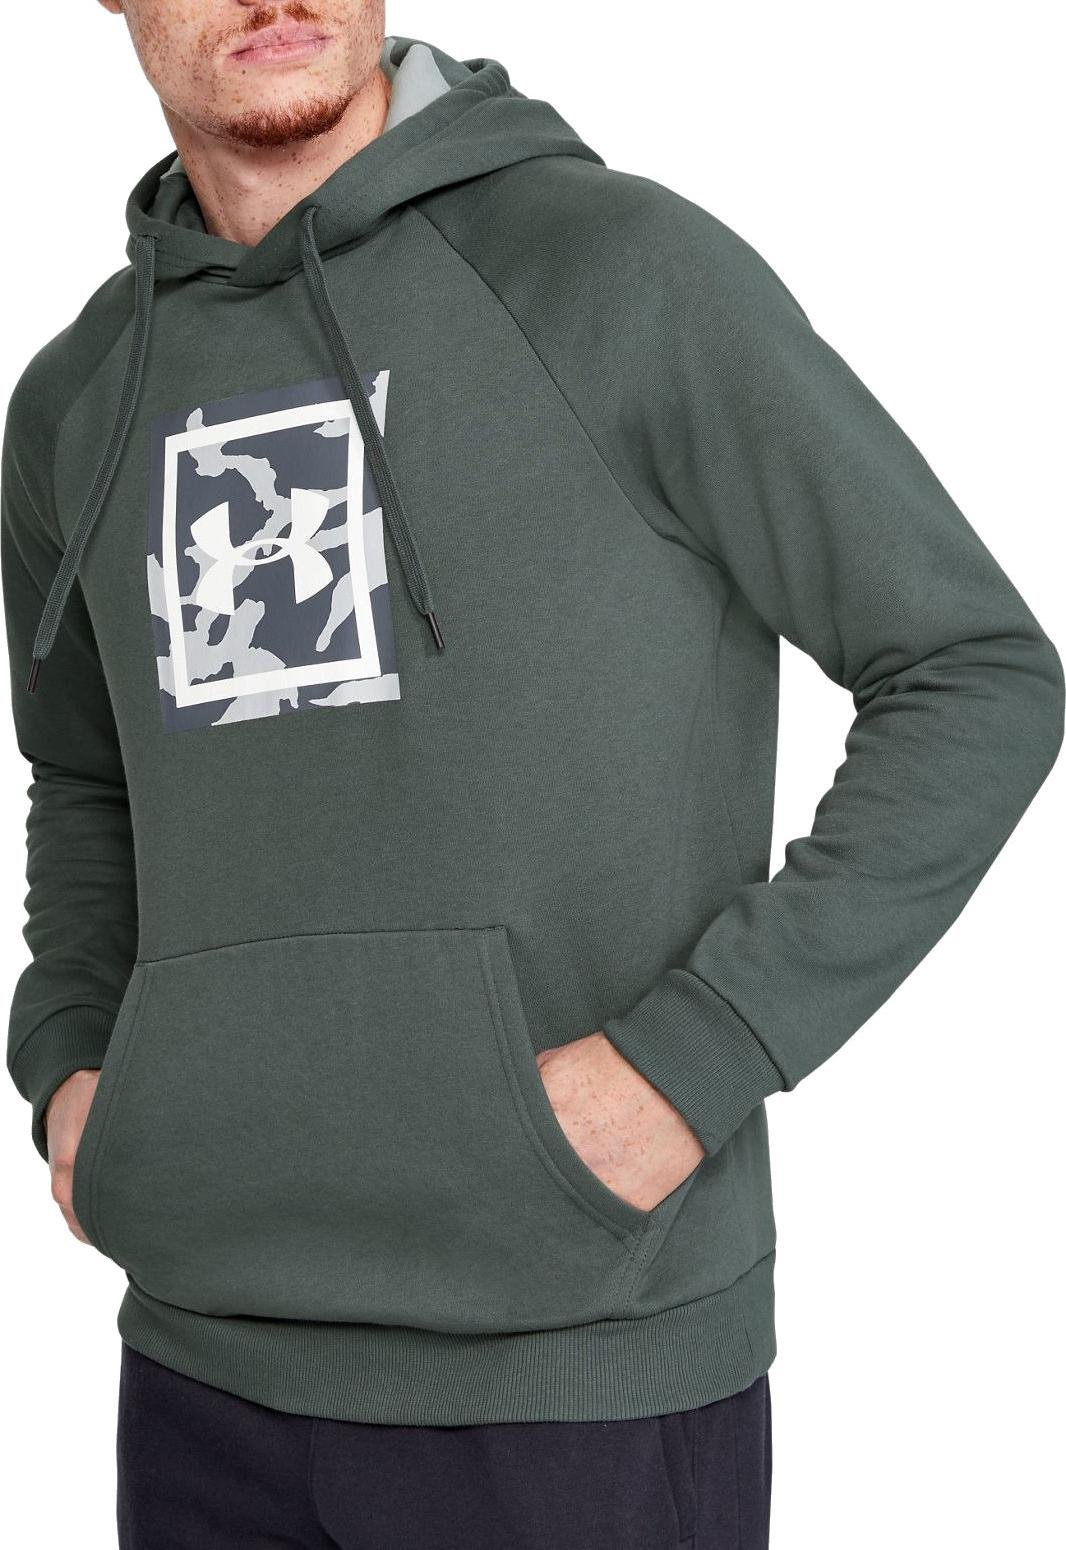 Hooded sweatshirt Under Armour RIVAL FLEECE PRINTED HOODIE